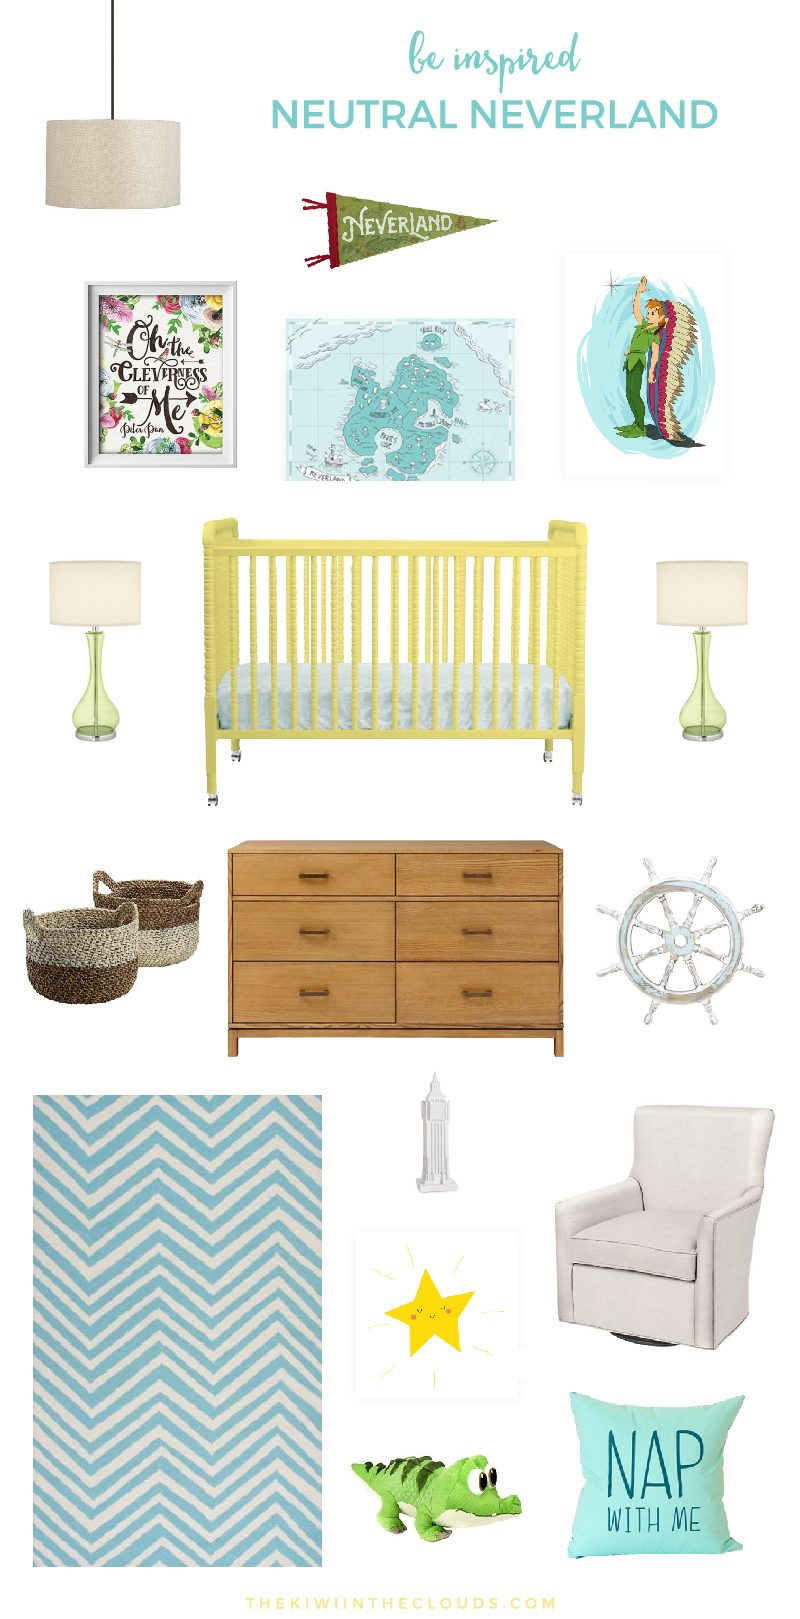 Peter Pan Nursery | Gender Neutral Nursery | Baby Nursery Ideas